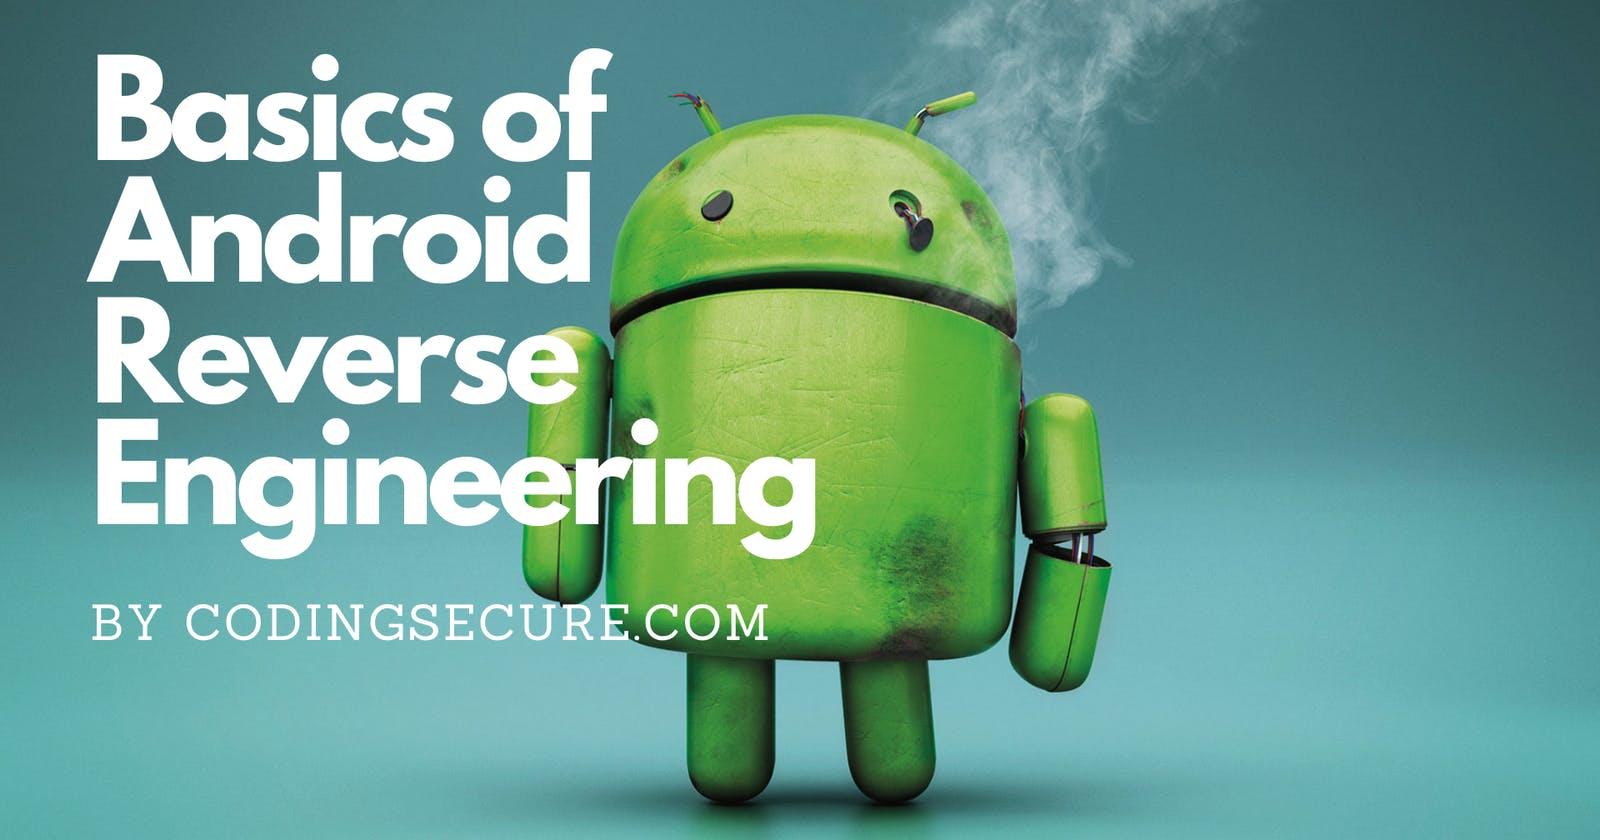 Basics of Android Reverse Engineering